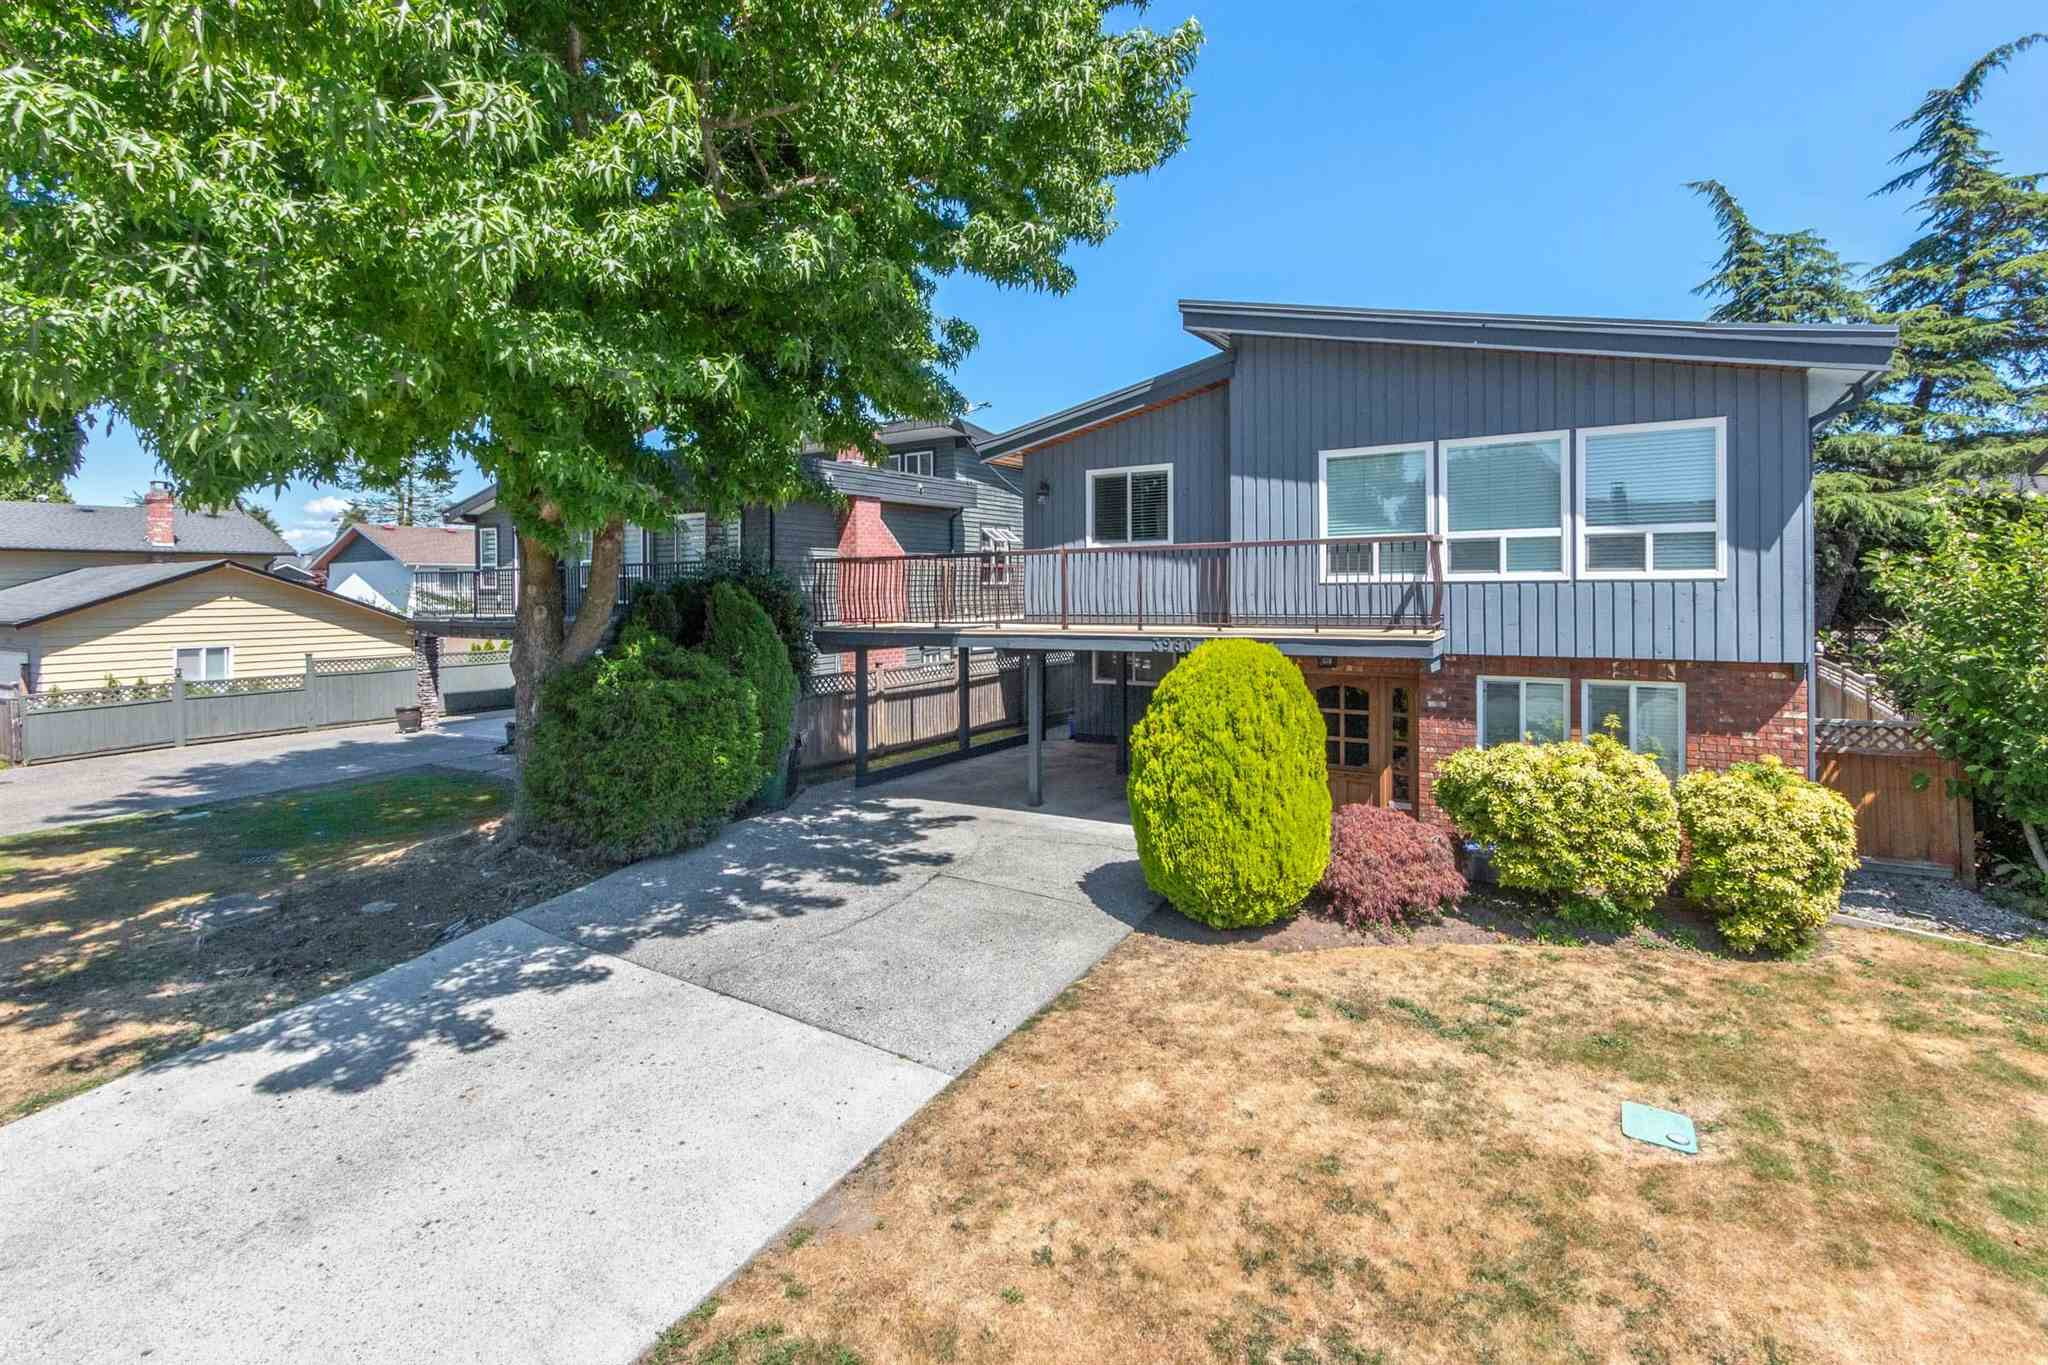 3960 BARGEN DRIVE - East Cambie House/Single Family for sale, 5 Bedrooms (R2604104)